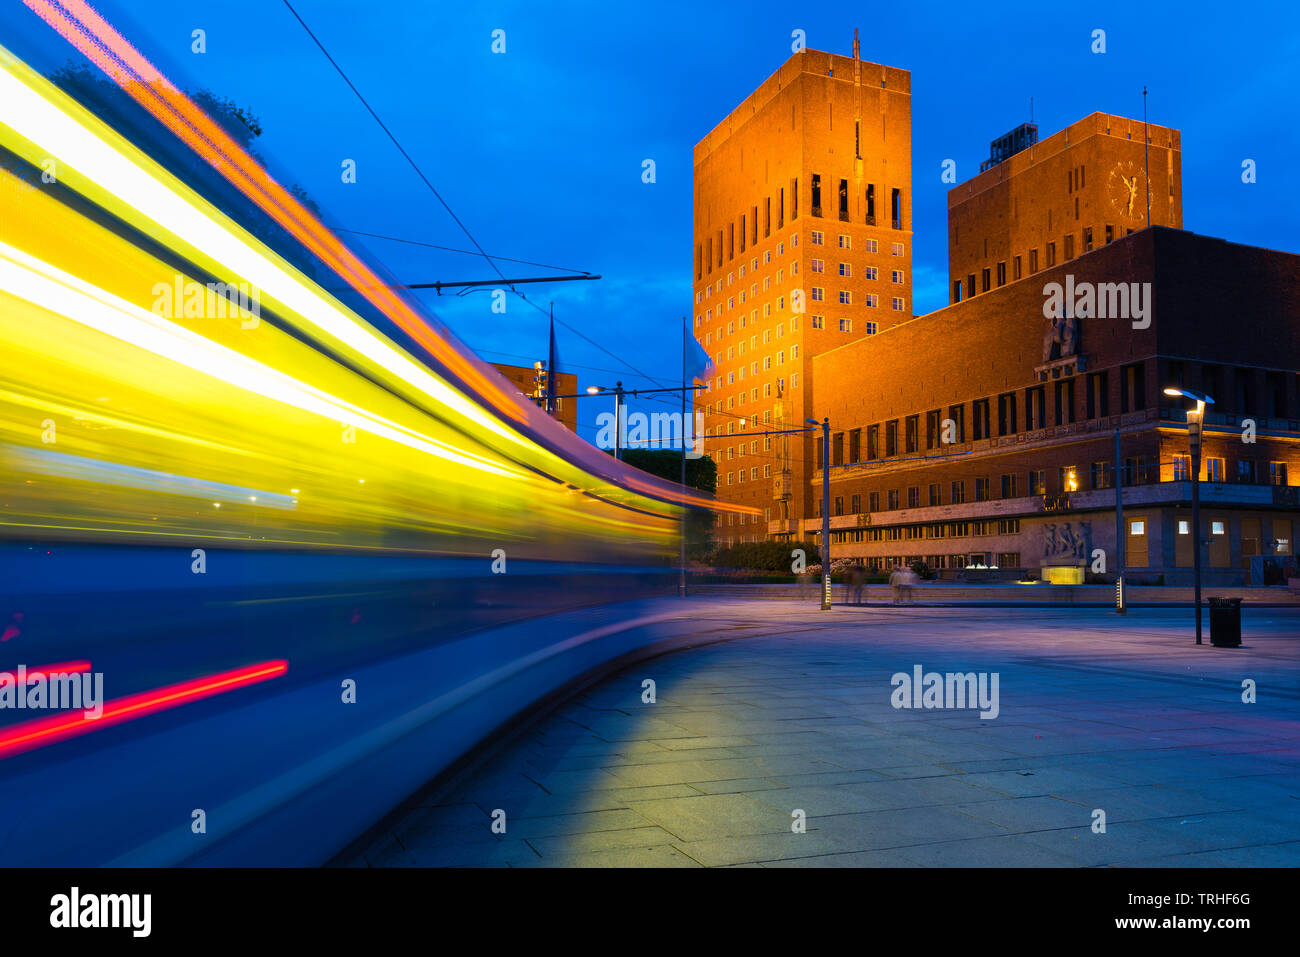 Oslo city centre, view at night of a city tram speeding towards the Town Hall building (Radhus) in the central harbour district of Oslo, Norway. Stock Photo